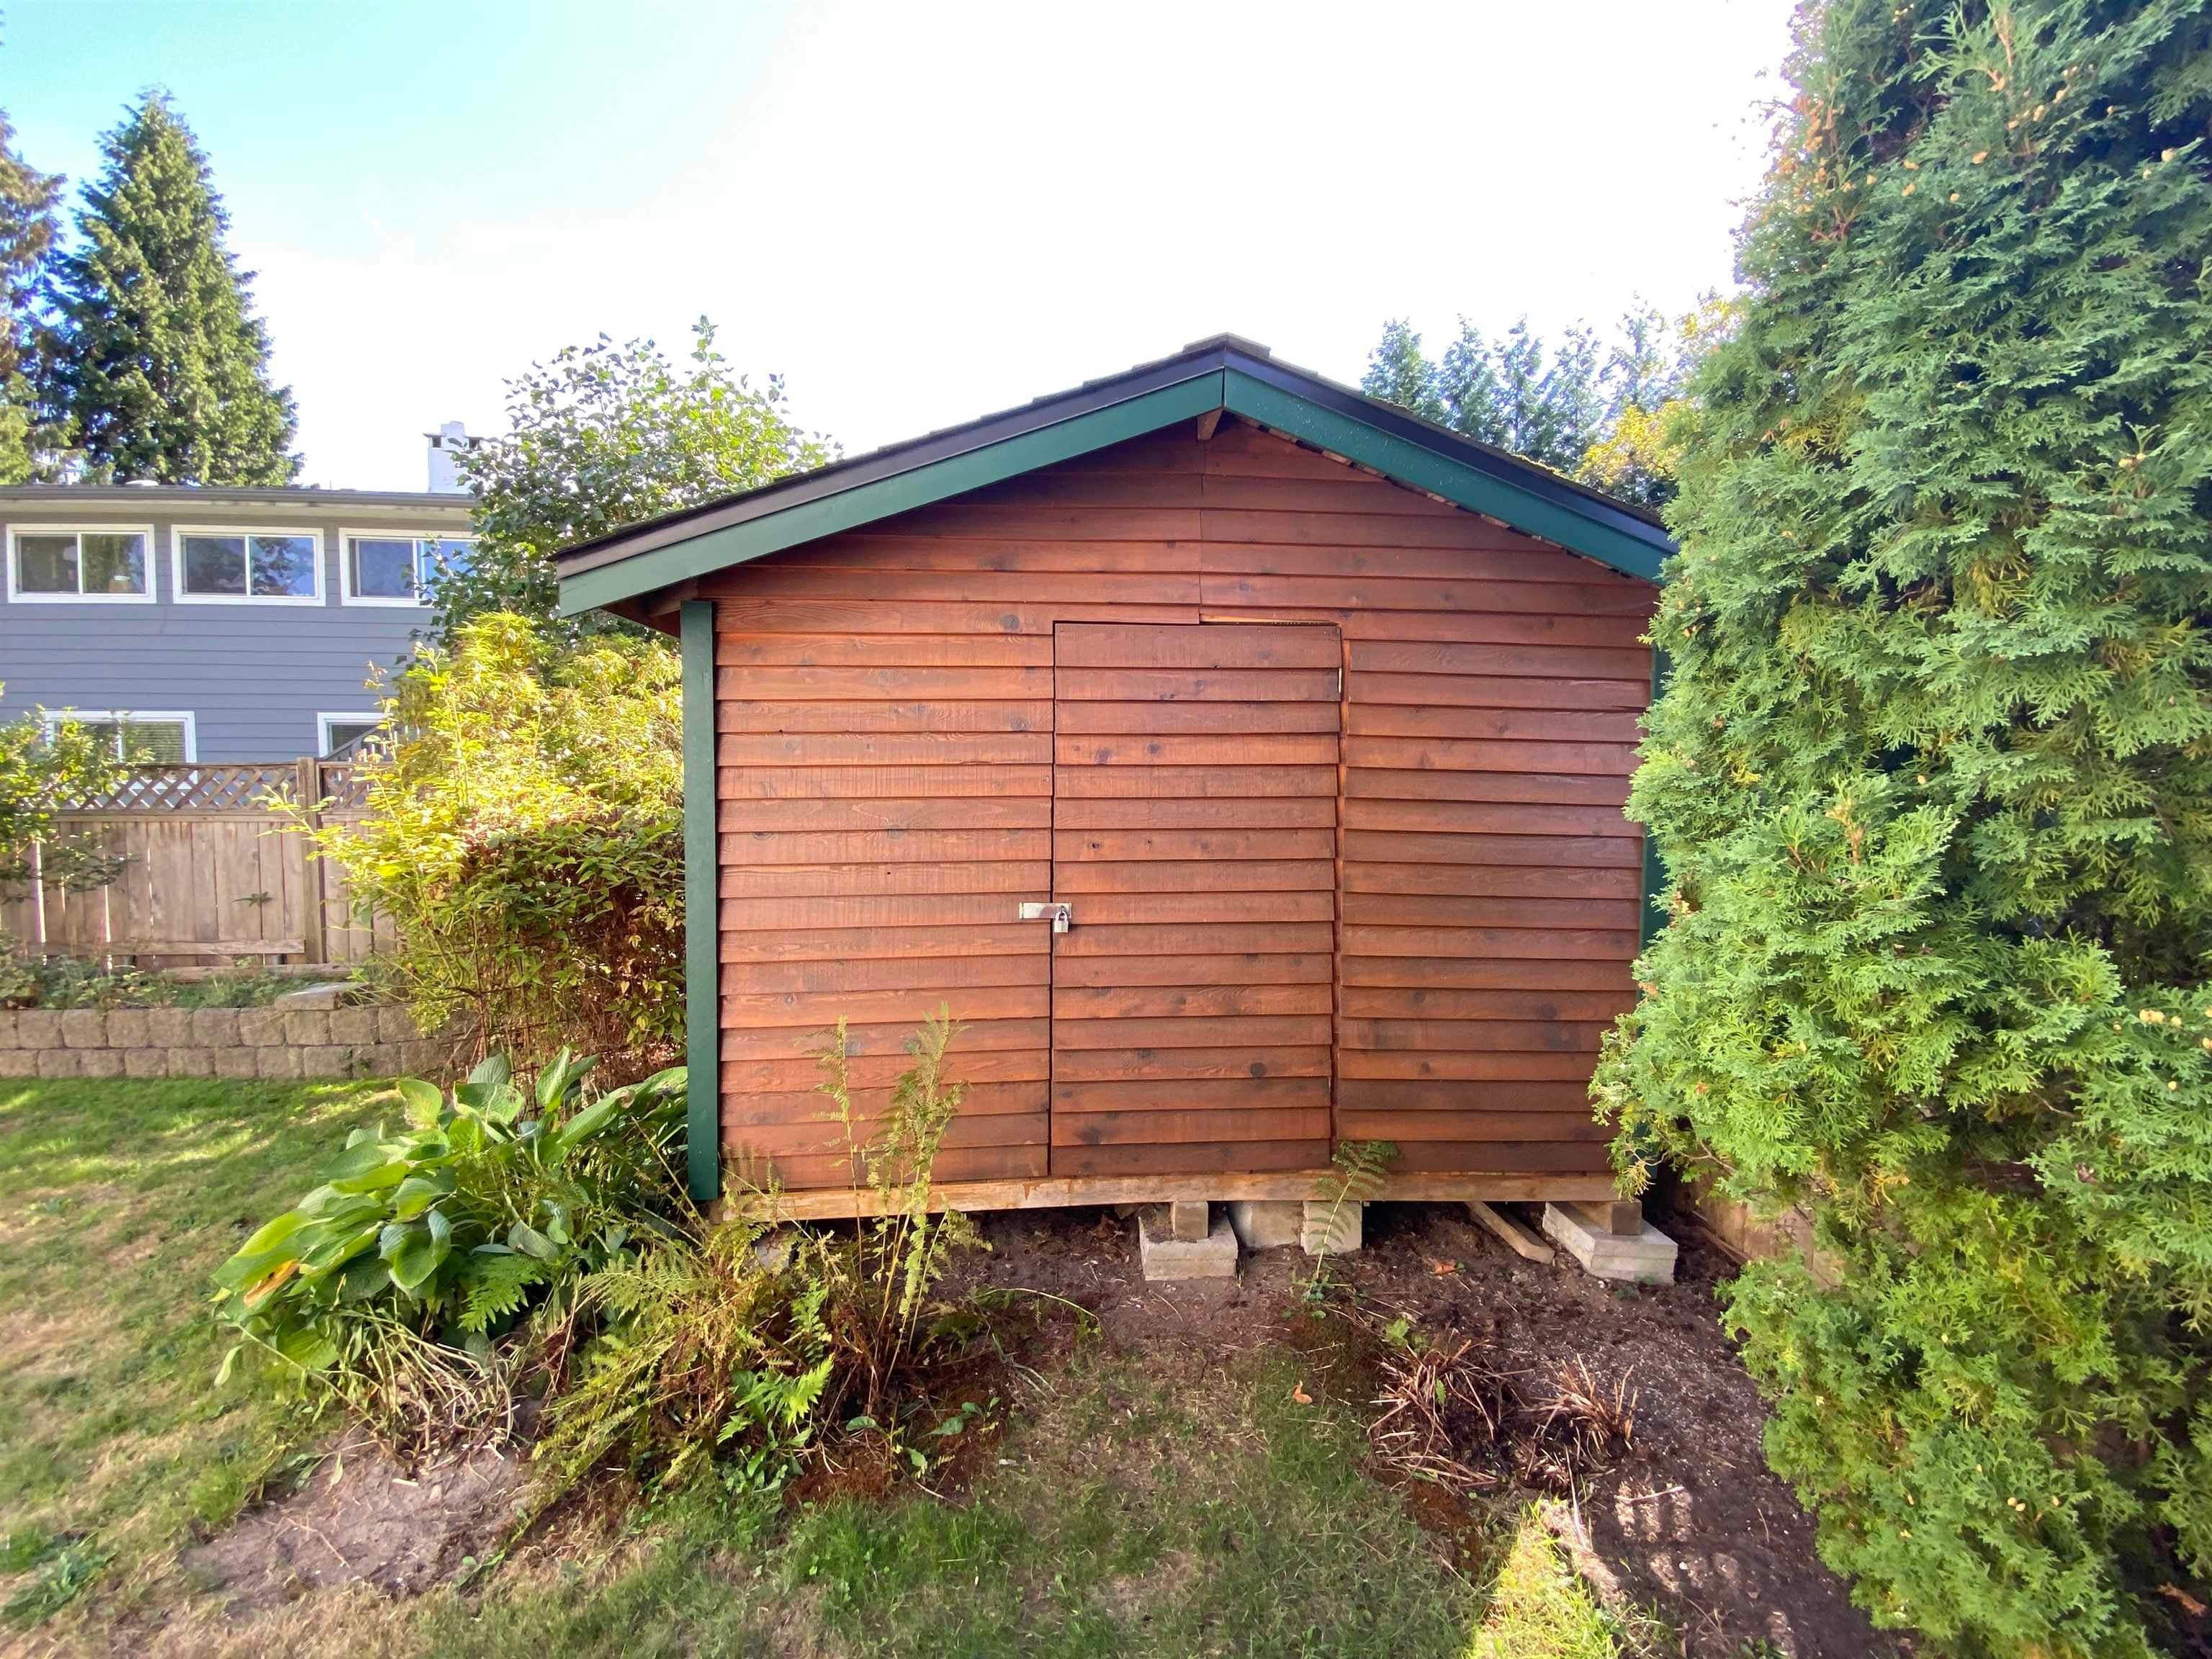 19950 48A AVENUE - Langley City House/Single Family for sale, 4 Bedrooms (R2615832) - #19